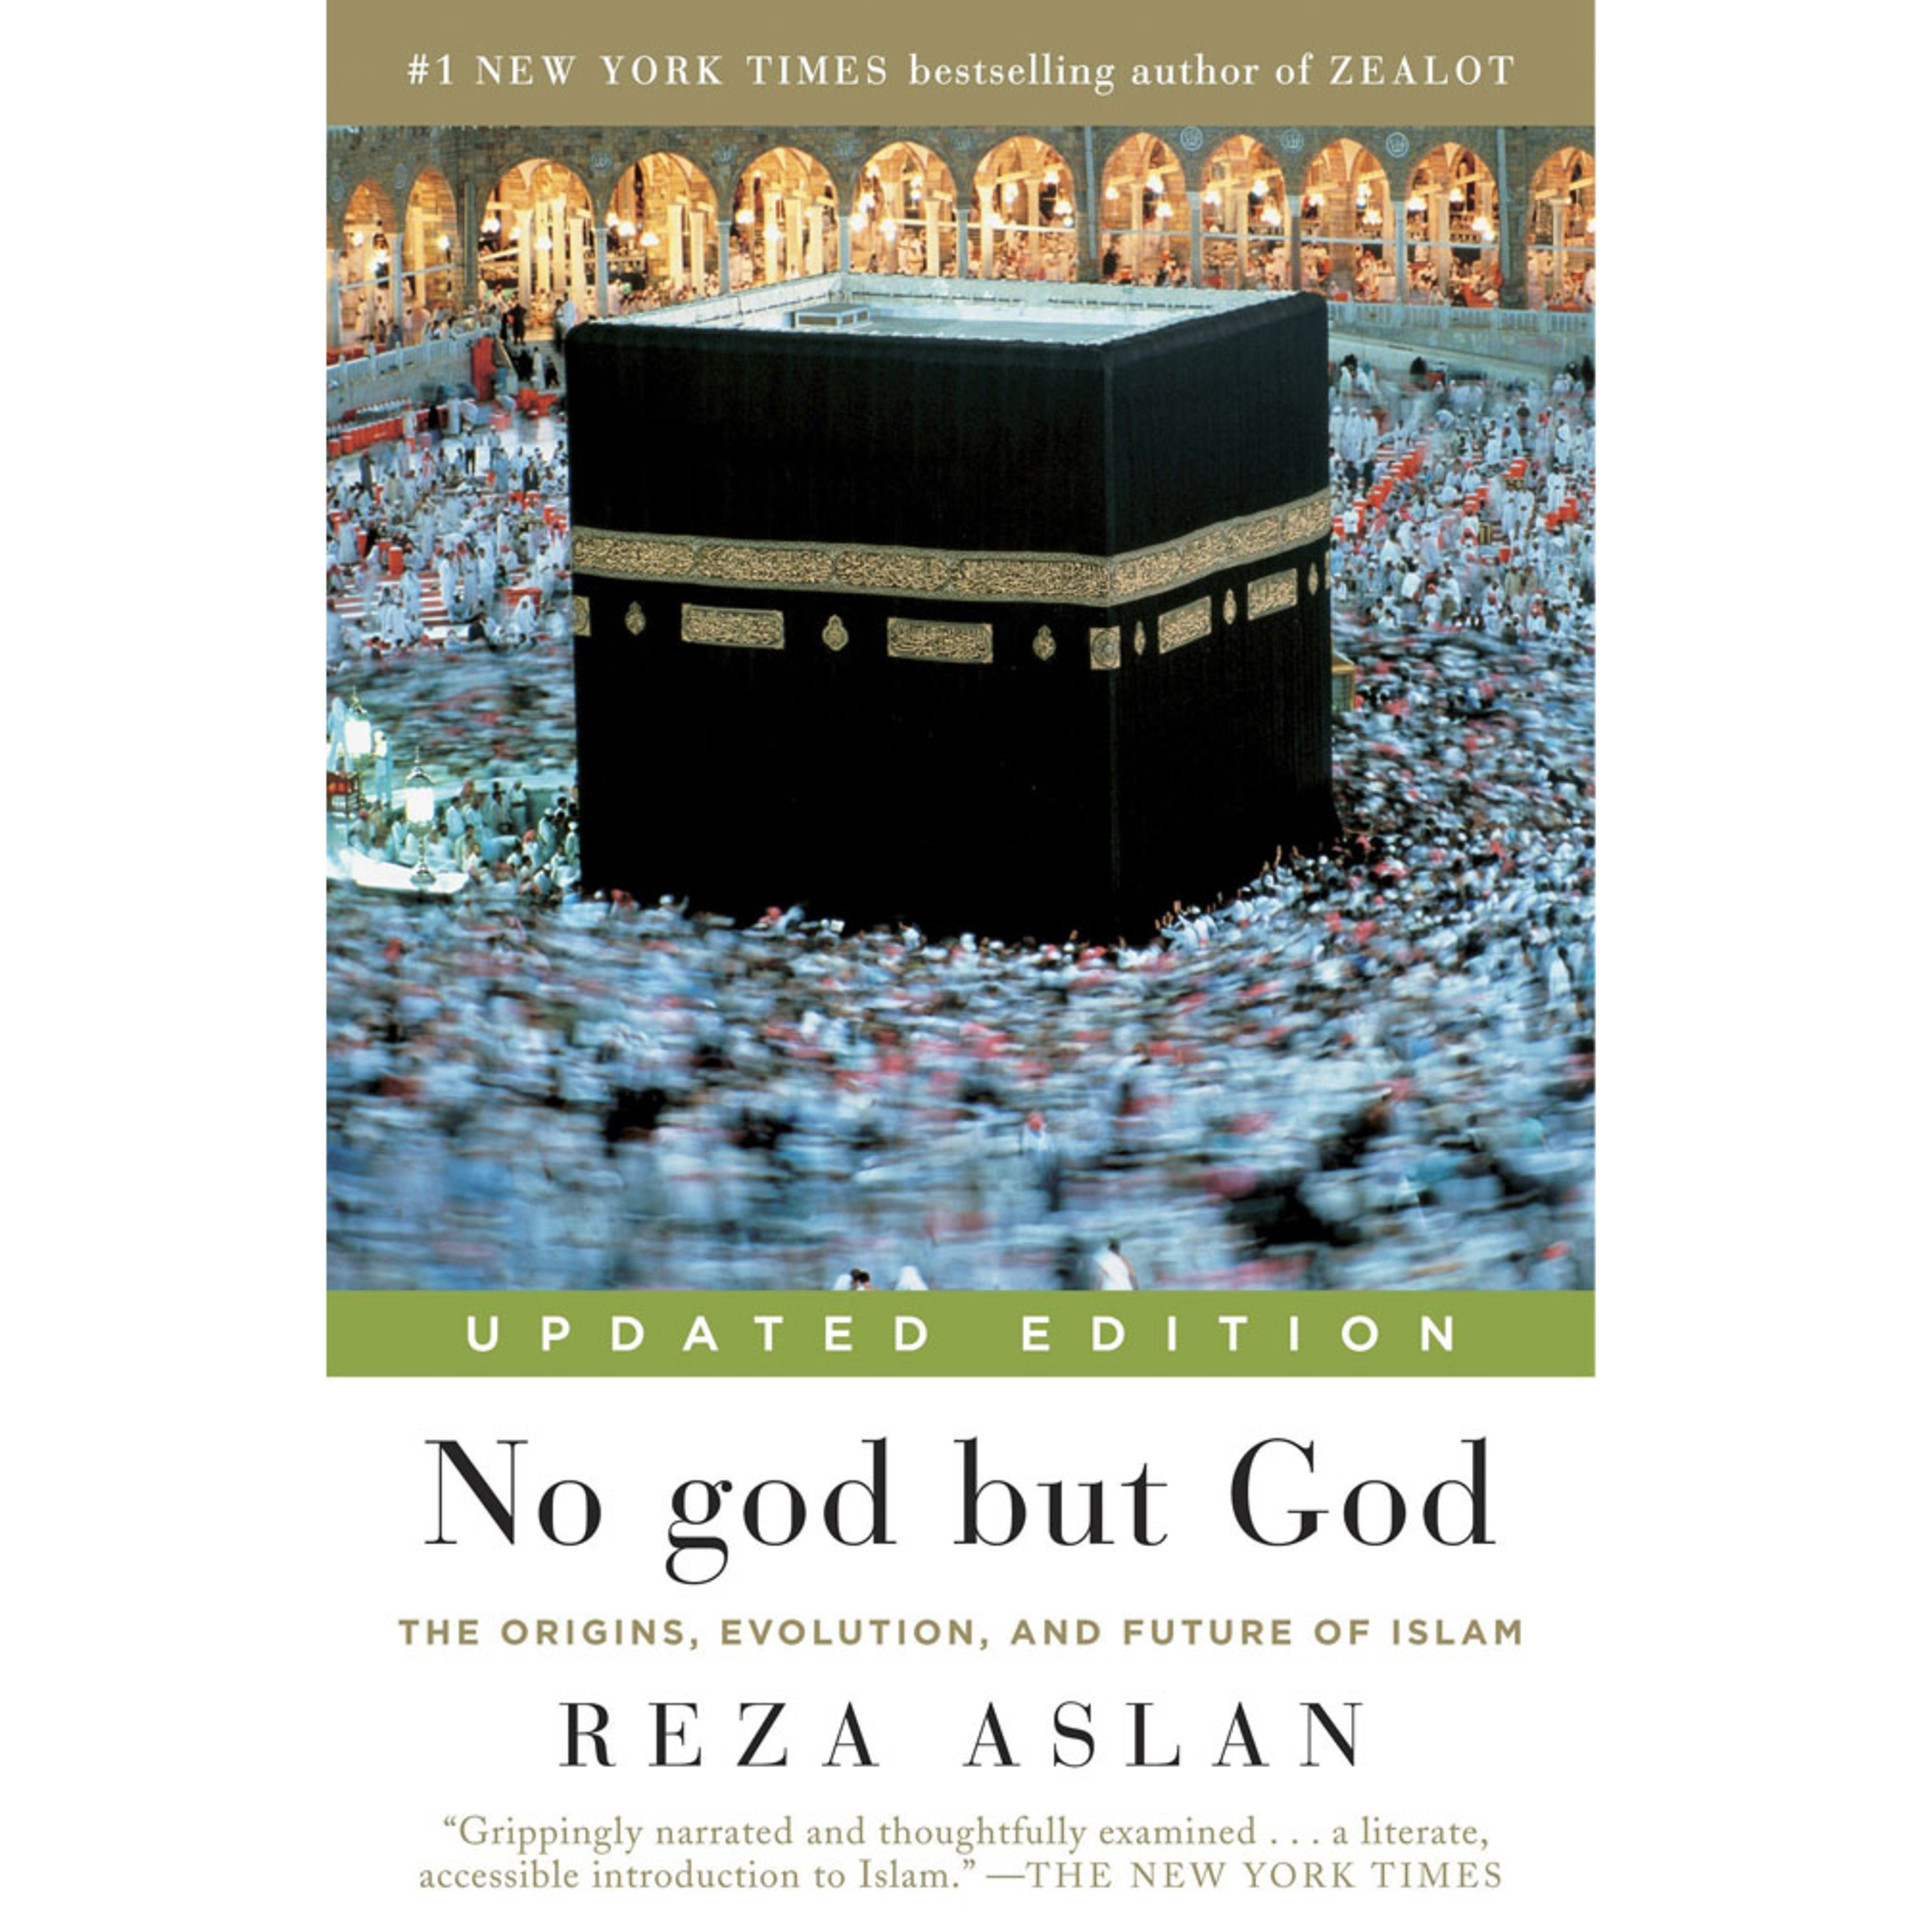 No god but God: The Origins, Evolution, and Future of Islam by Reza Aslan, Updated Edition